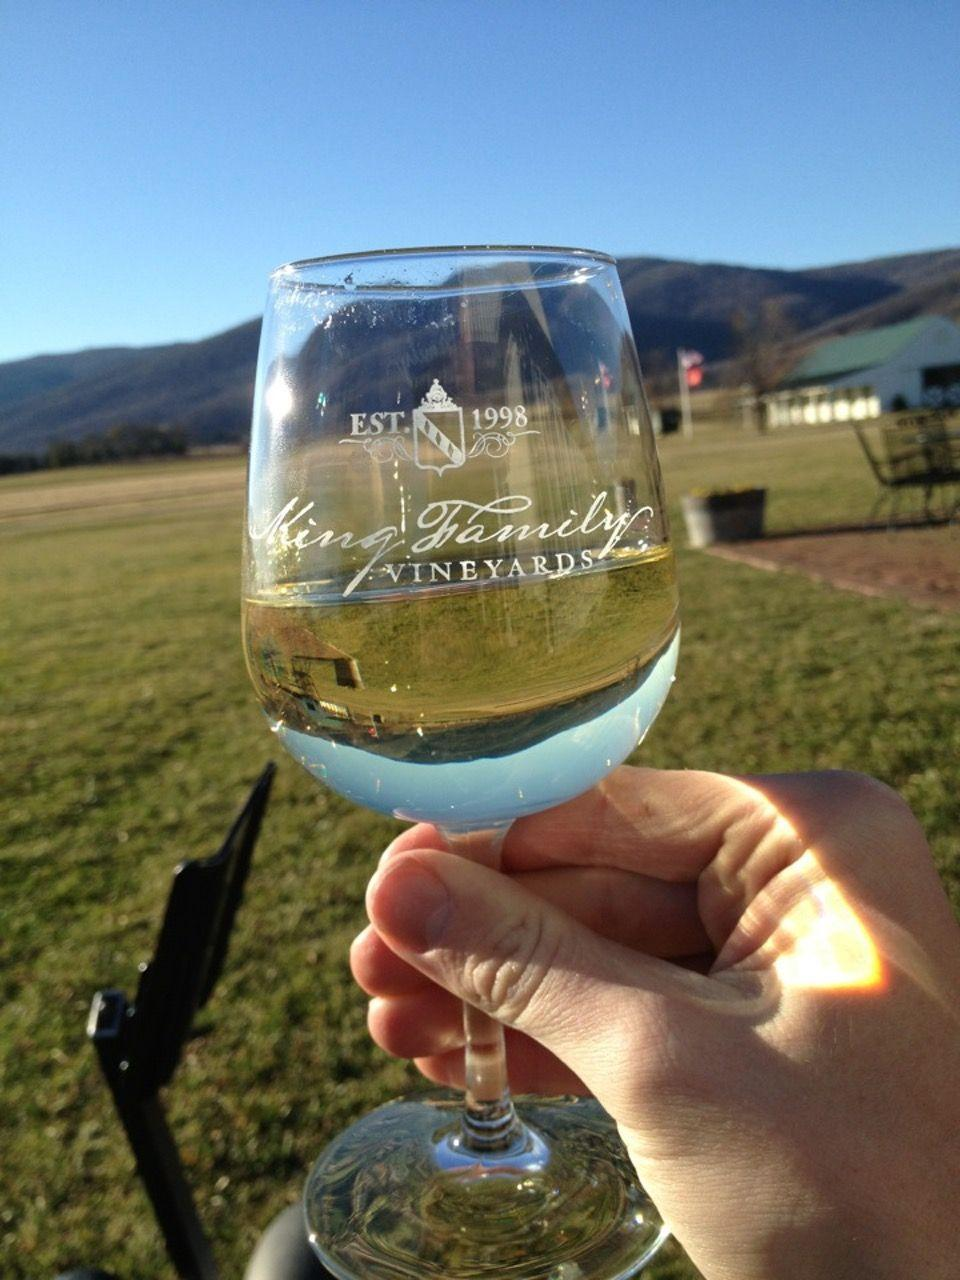 "<p><a href=""https://foursquare.com/kingvineyards"" rel=""nofollow noopener"" target=""_blank"" data-ylk=""slk:King Family Vineyards"" class=""link rapid-noclick-resp"">King Family Vineyards</a> in Crozet</p><p>""Grab a glass of <span class=""entity tip_taste_match"">Merlot</span> and head to the <span class=""entity tip_taste_match"">outdoor patio</span> in the back. Amazing <span class=""entity tip_taste_match"">views</span> of the <span class=""entity tip_taste_match"">greenery</span>, <span class=""entity tip_taste_match"">mountains</span>, and nearby polo field.<span class=""redactor-invisible-space"">"" - Foursquare user <a href=""https://foursquare.com/kyledbye"" rel=""nofollow noopener"" target=""_blank"" data-ylk=""slk:Kyle Bye"" class=""link rapid-noclick-resp"">Kyle Bye</a></span></p>"